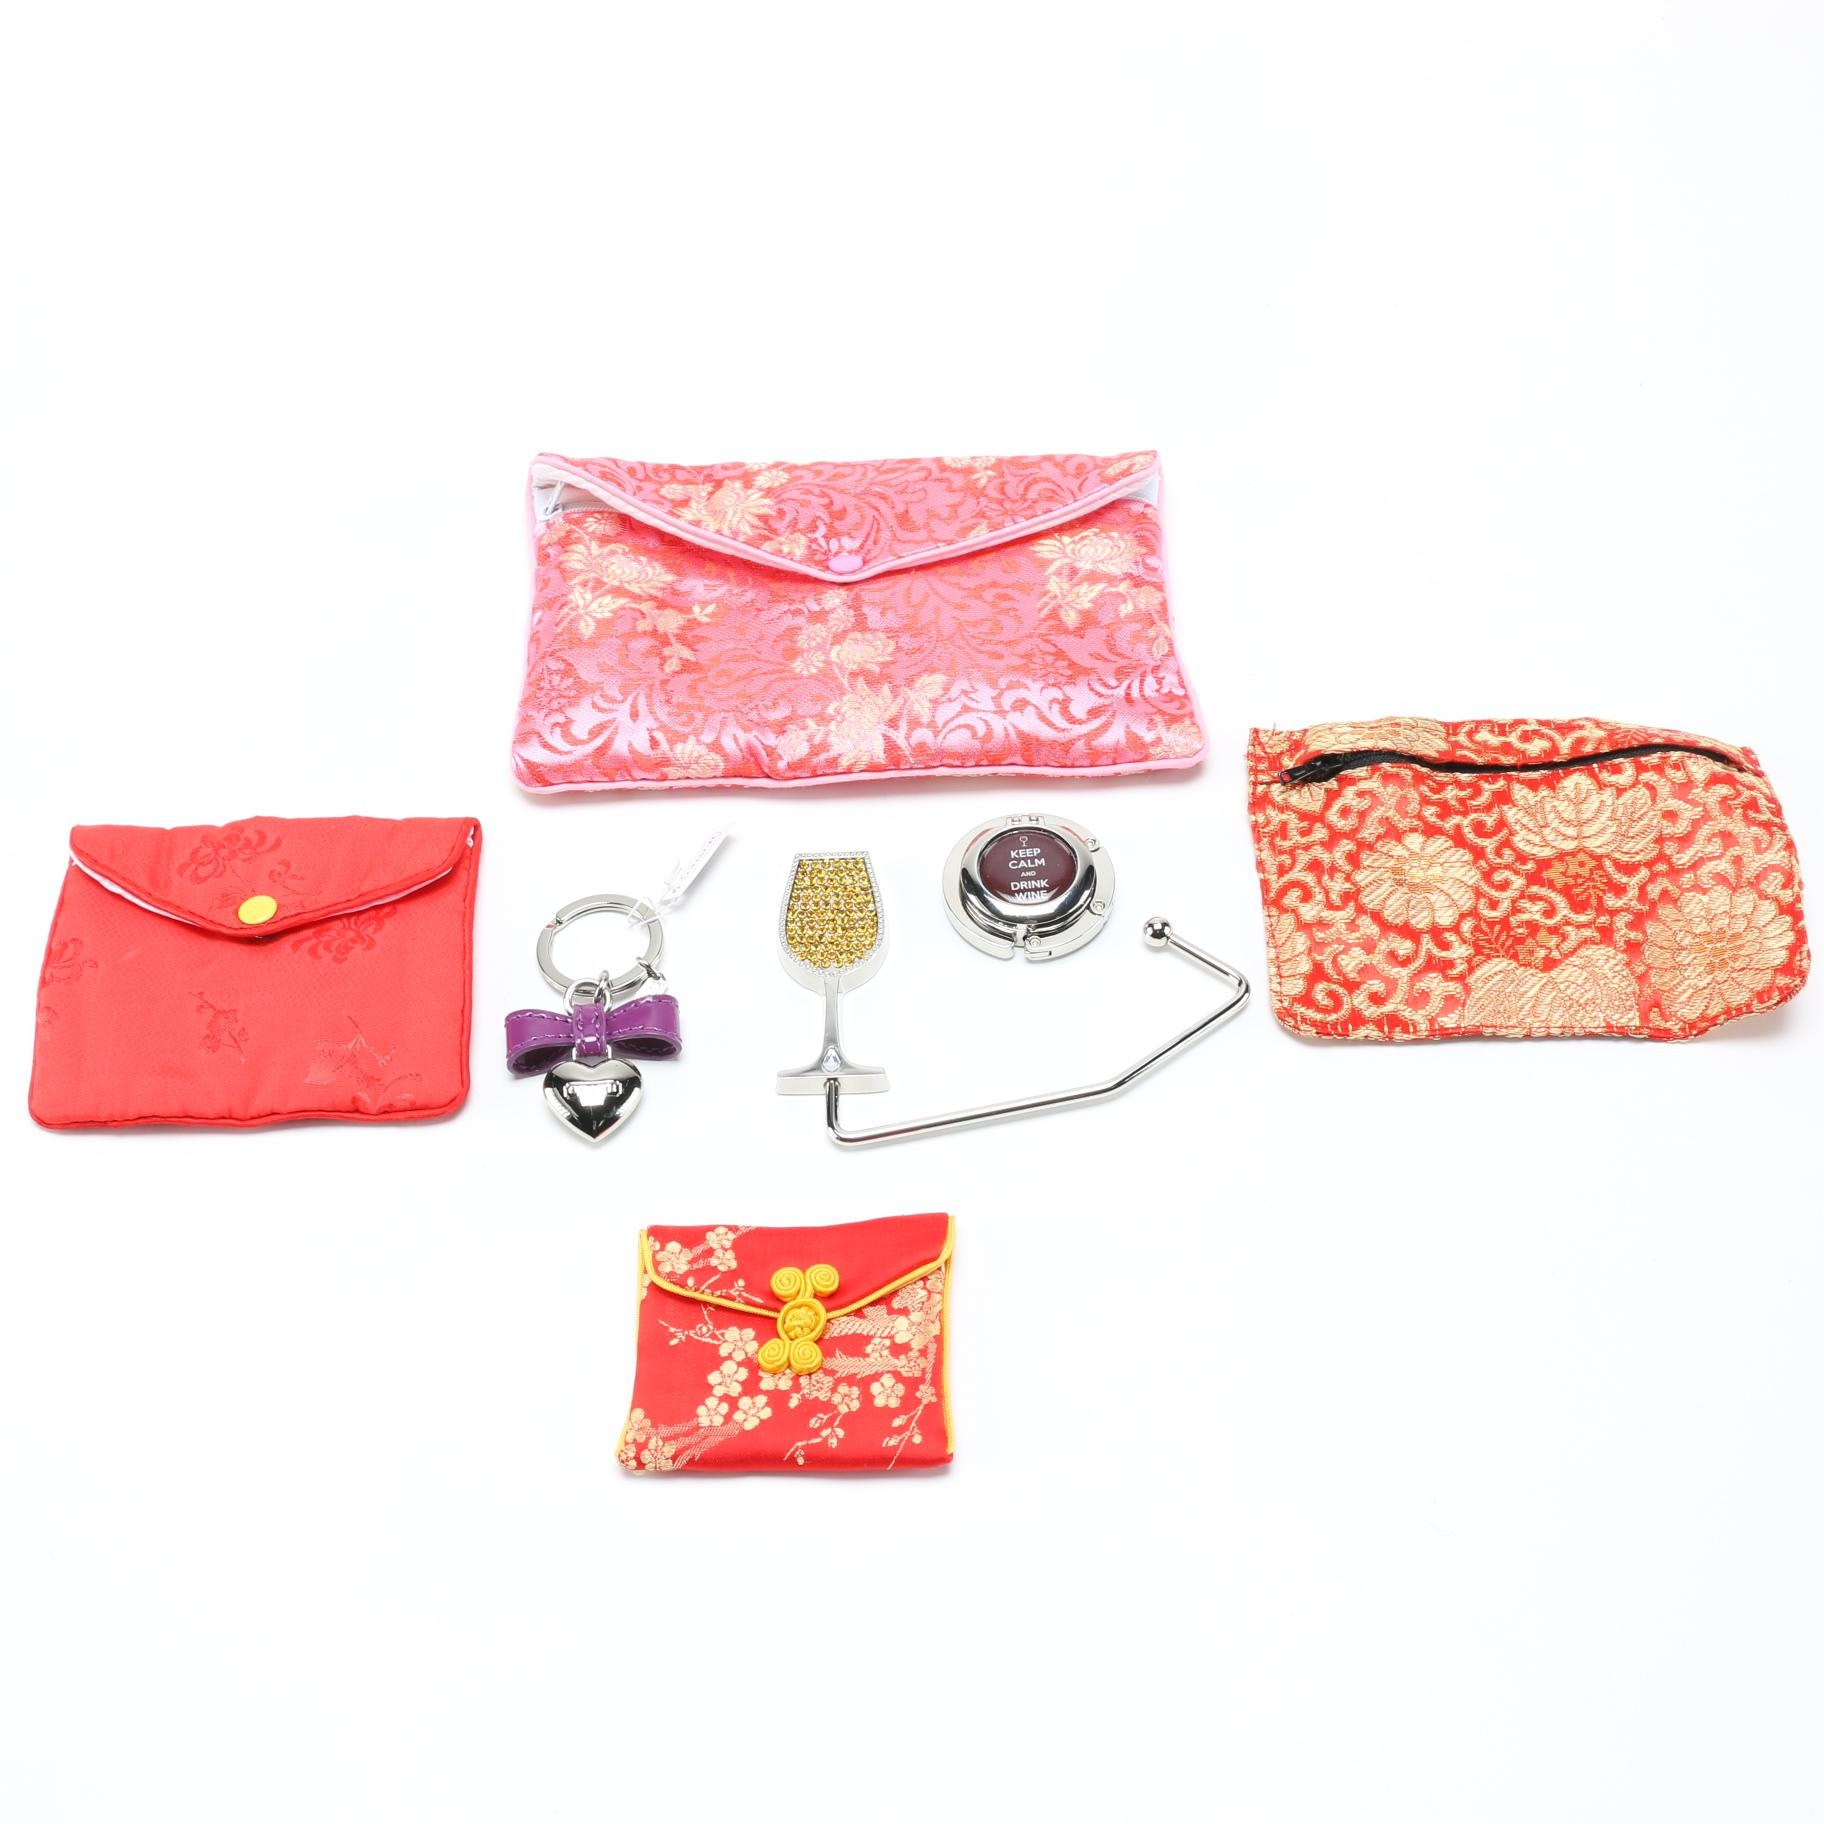 Jewelry Bags, Purse Table Hooks, and Coach Keychain